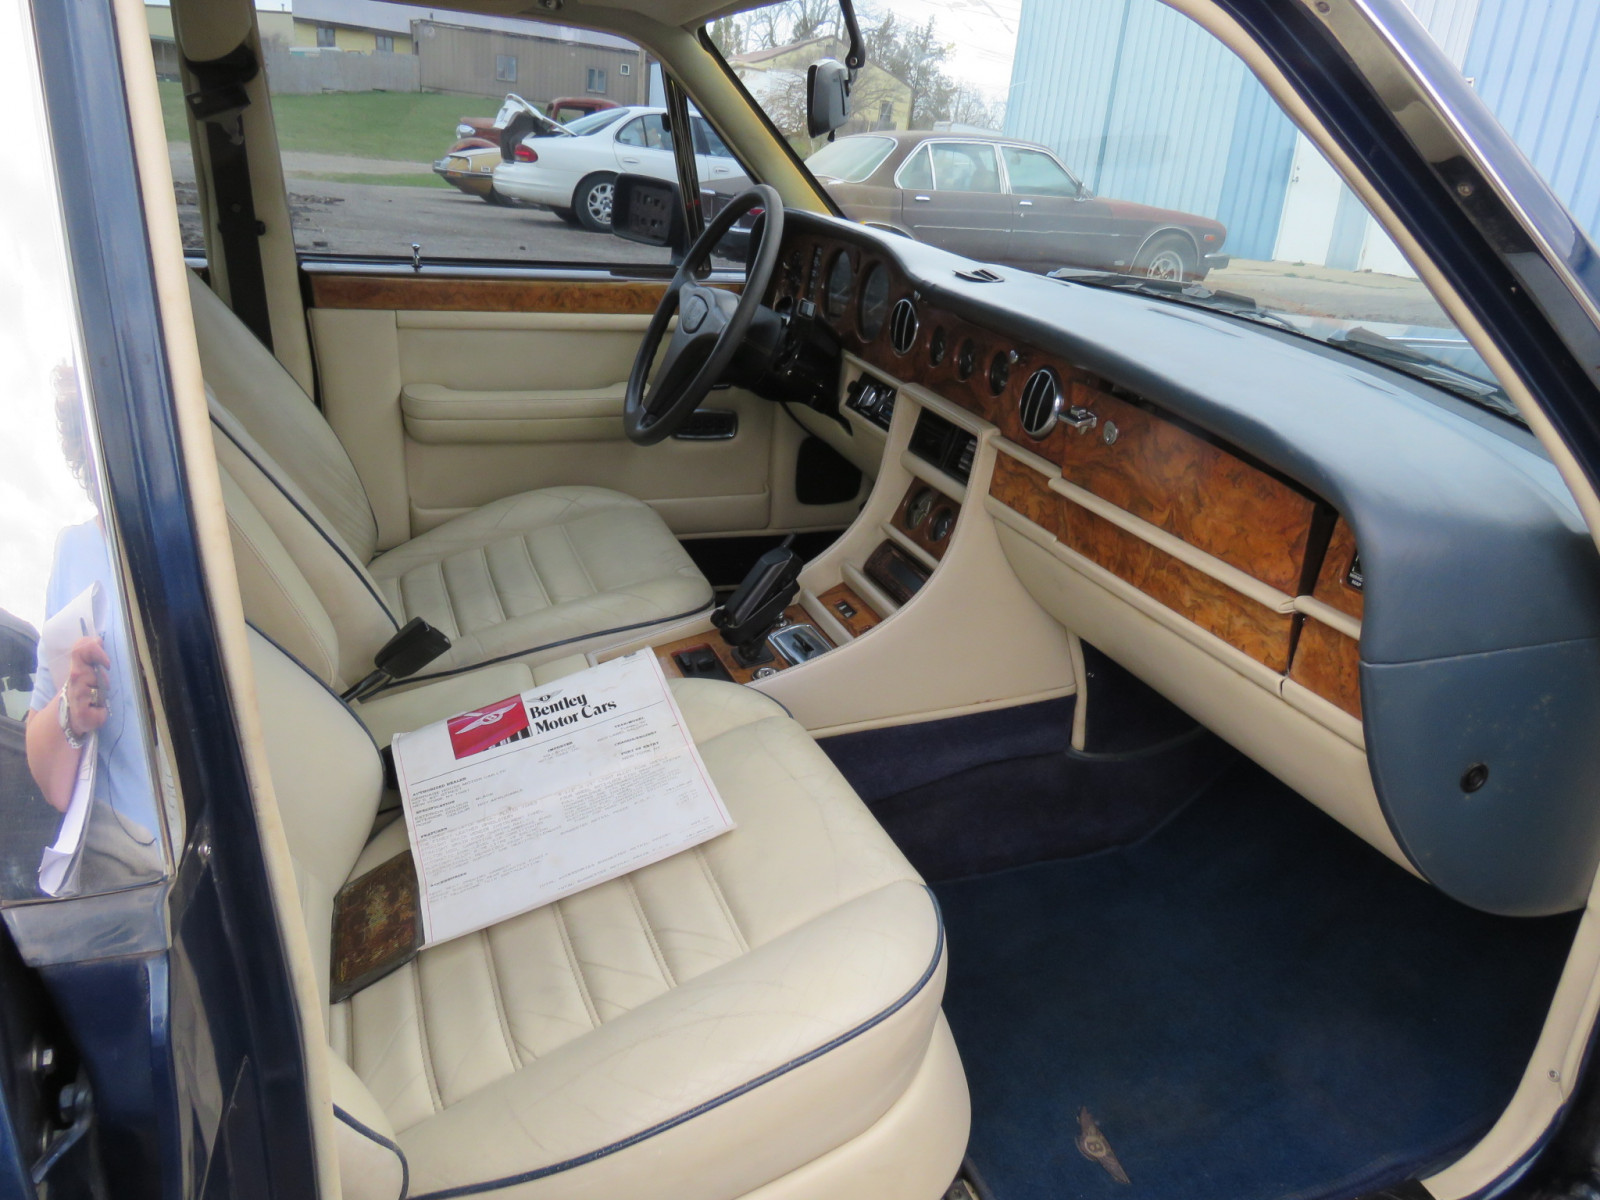 1988 Bentley Turbo R 4dr Sedan - Image 16